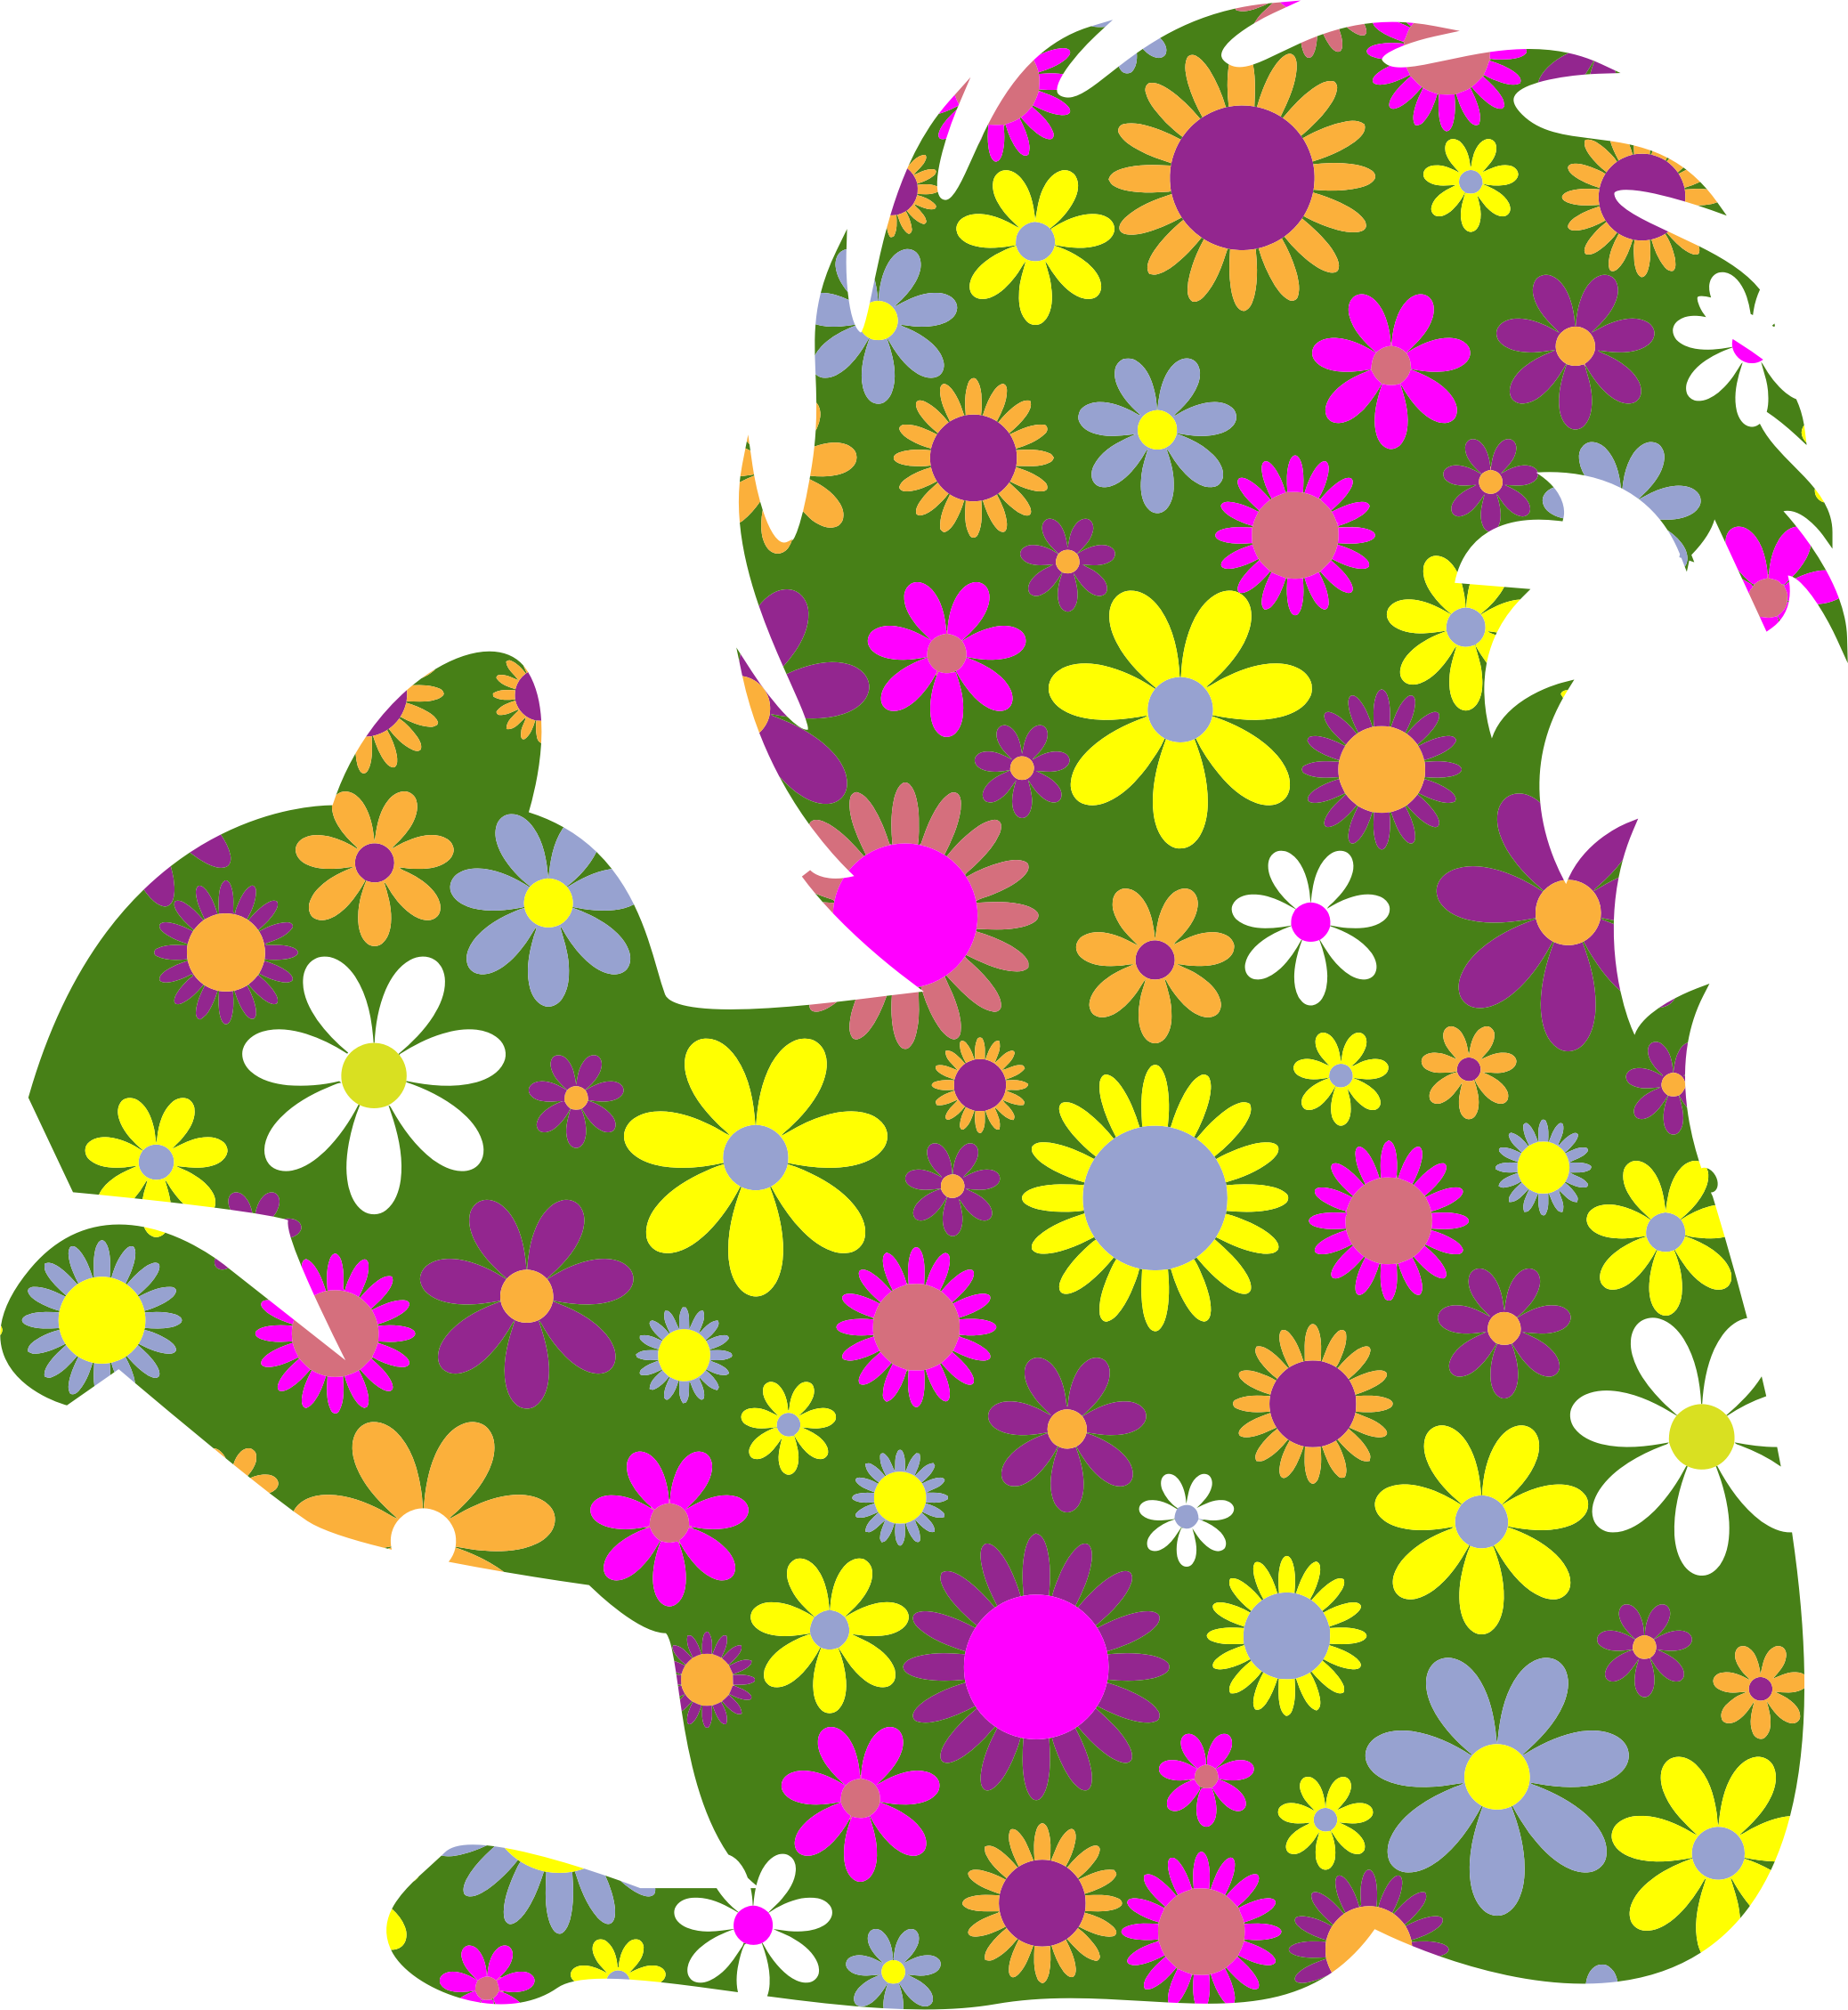 Retro Floral Squirrel Profile by GDJ